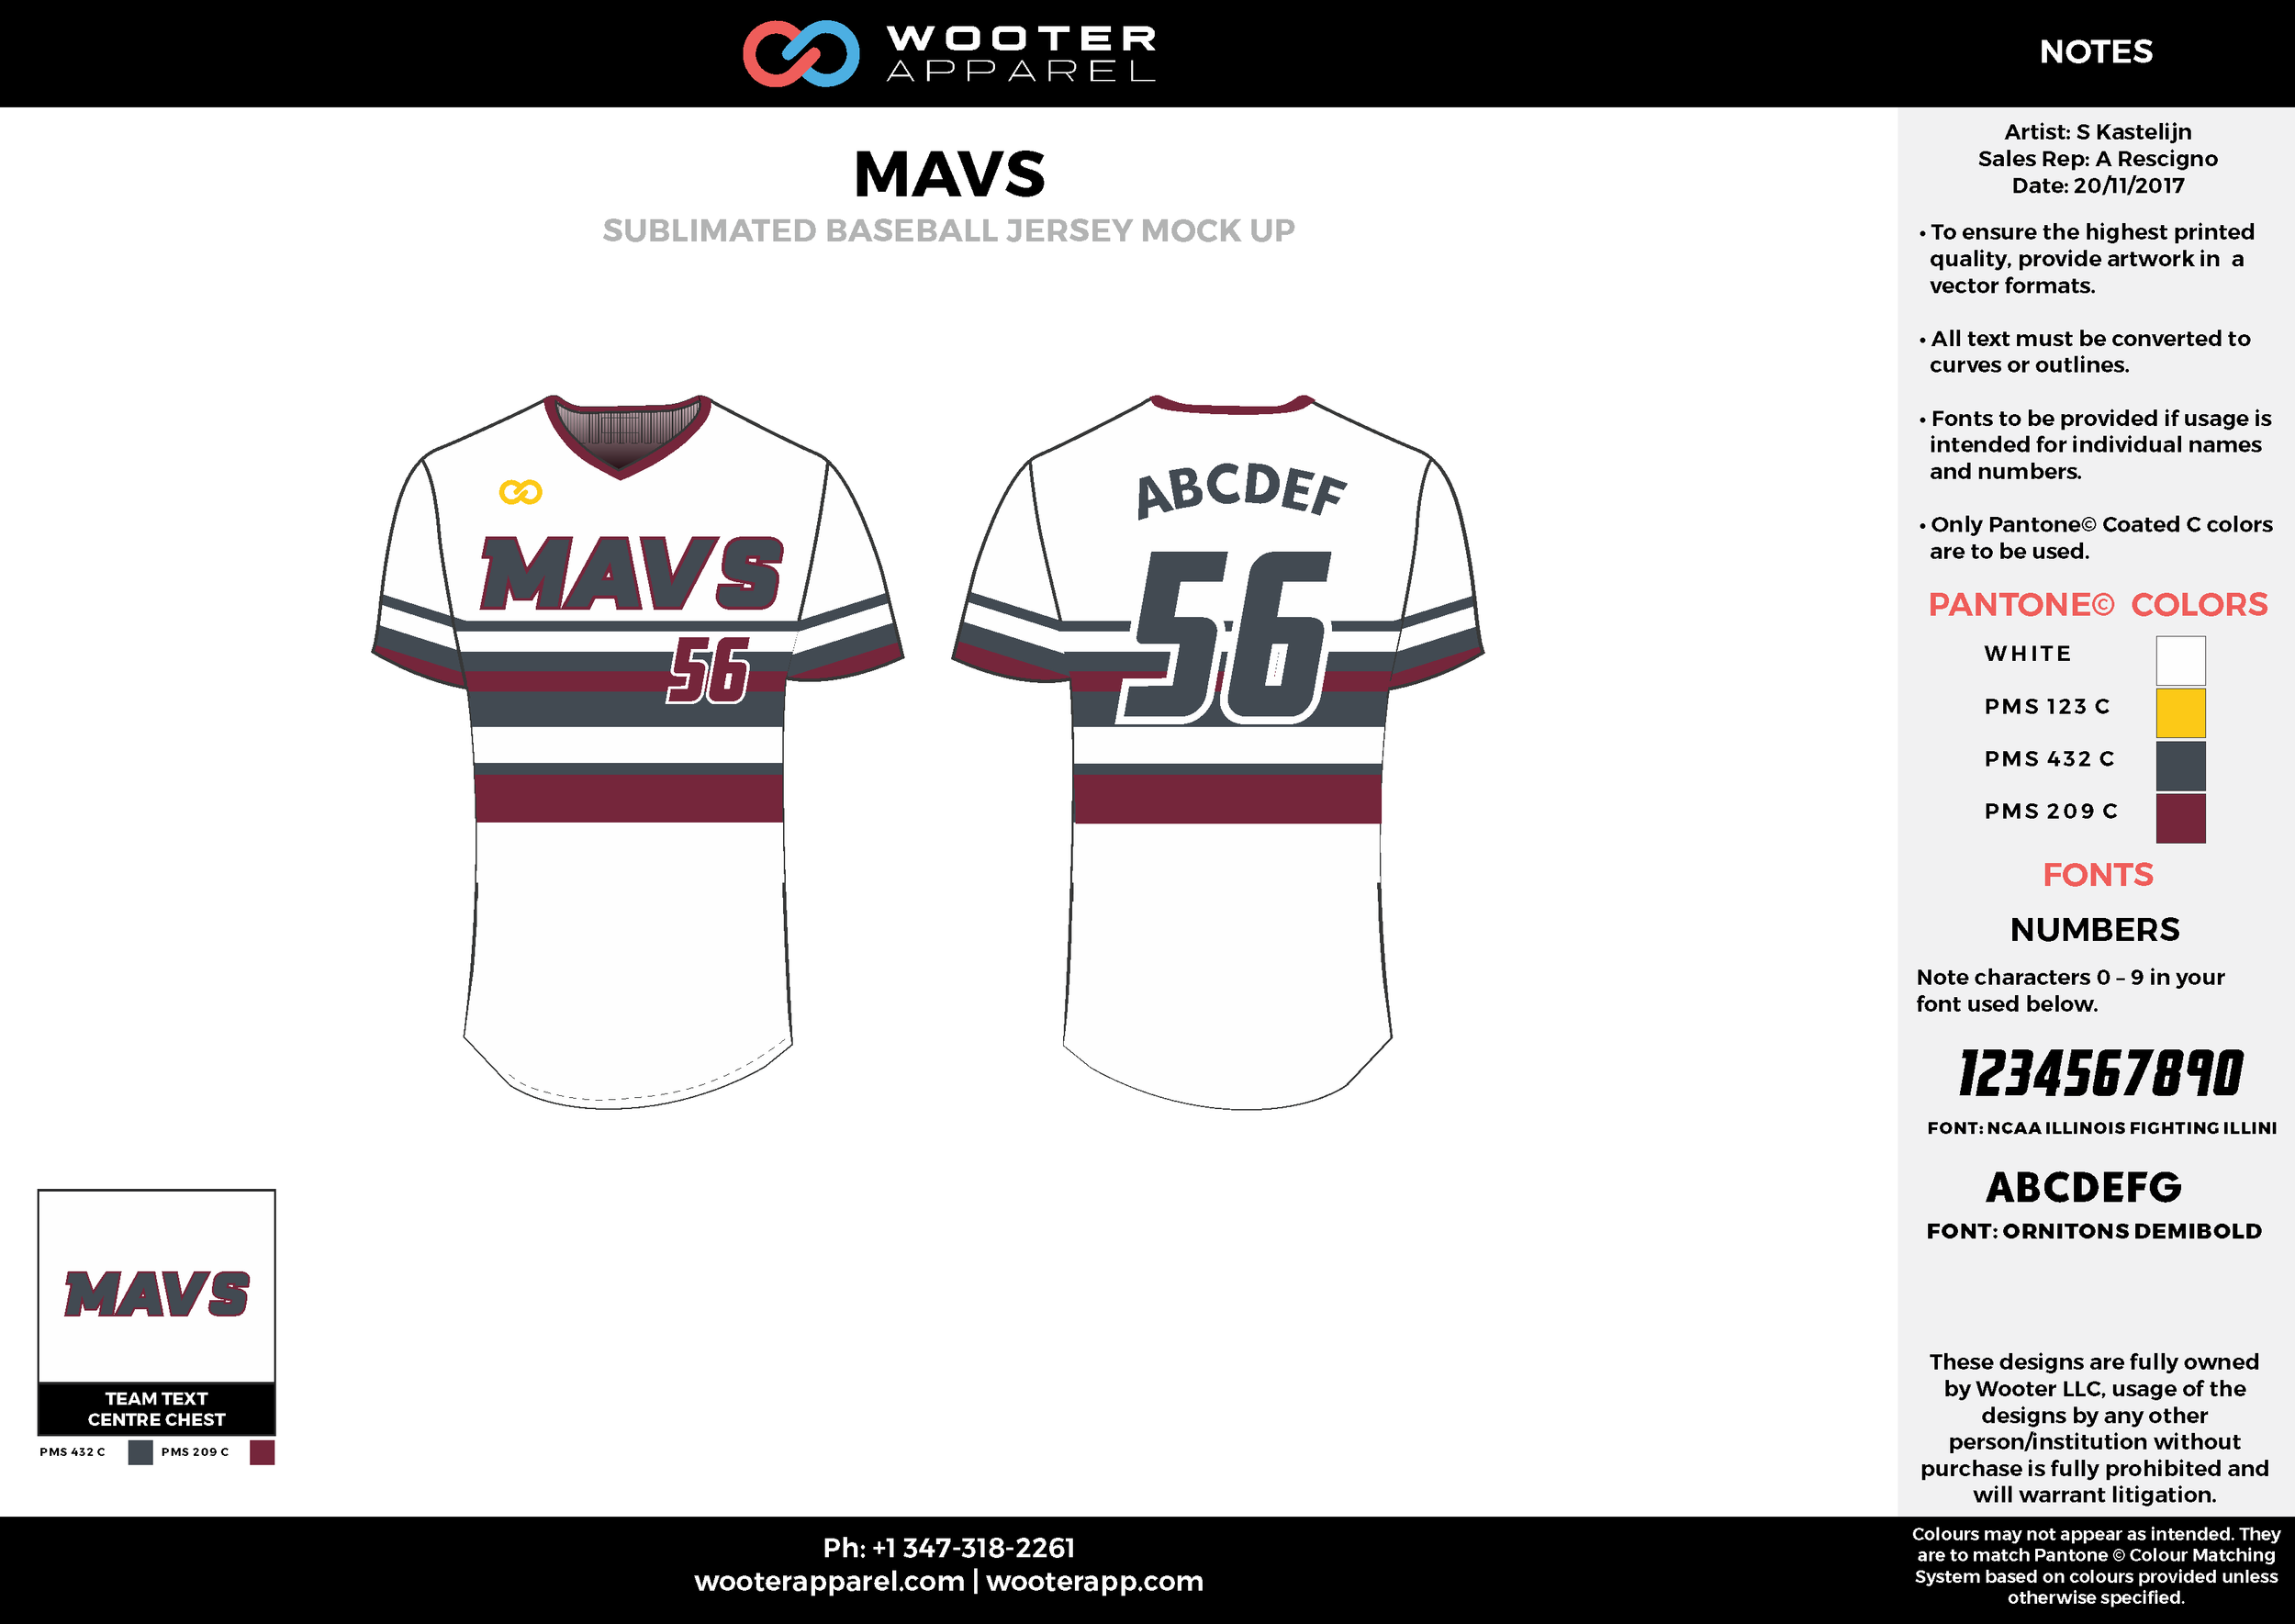 MAVS white dark gray maroon yellow baseball uniforms jerseys tops